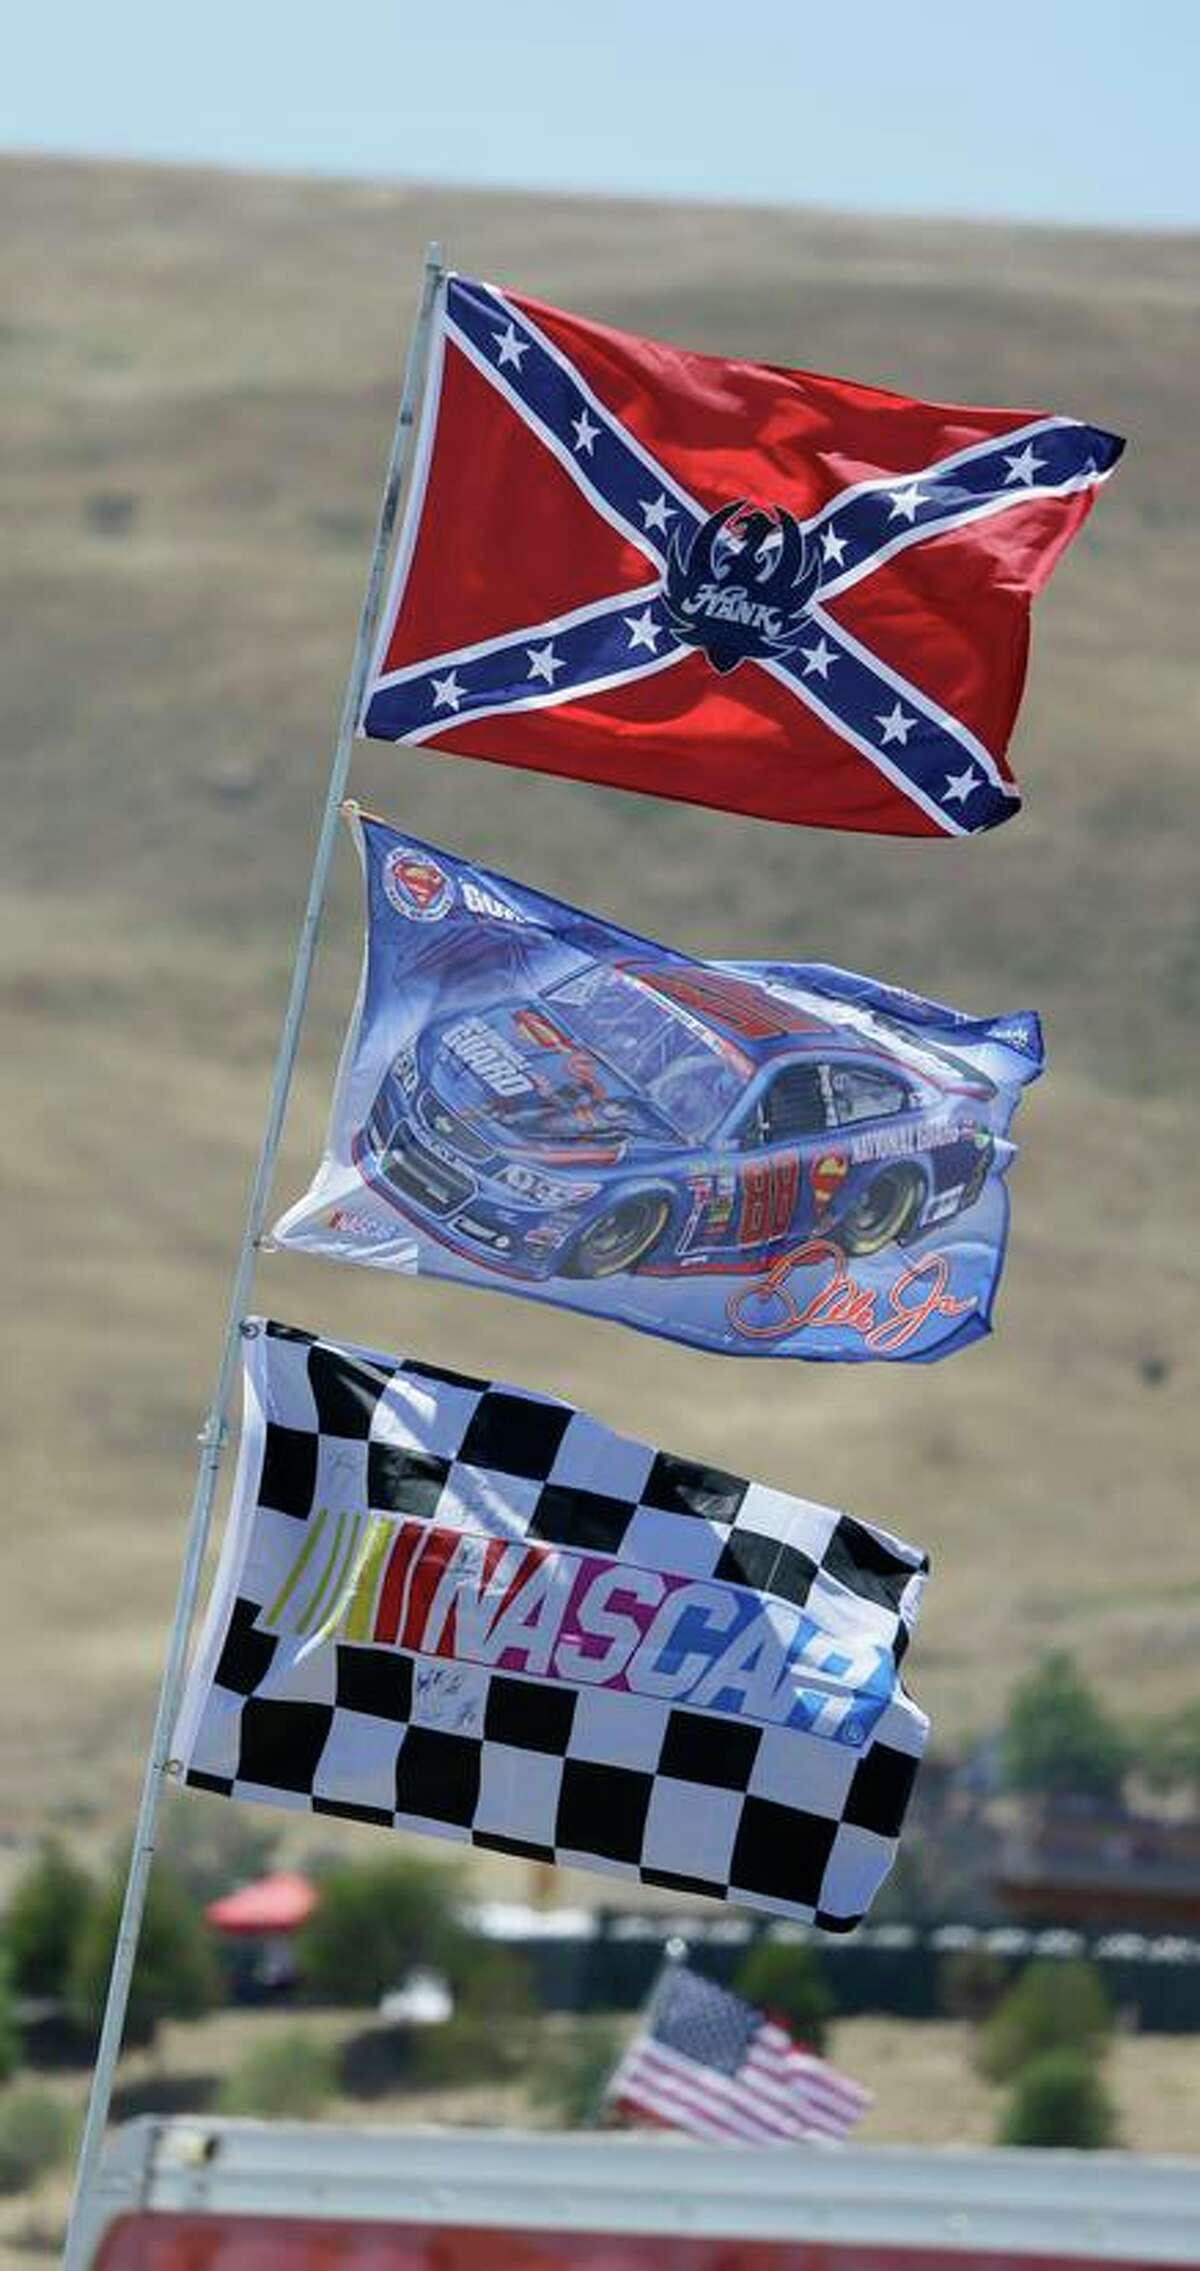 NASCAR said on Wednesday that Confederate flags - like this one flying at Sonoma Raceway - are now banned from the racing circuit.